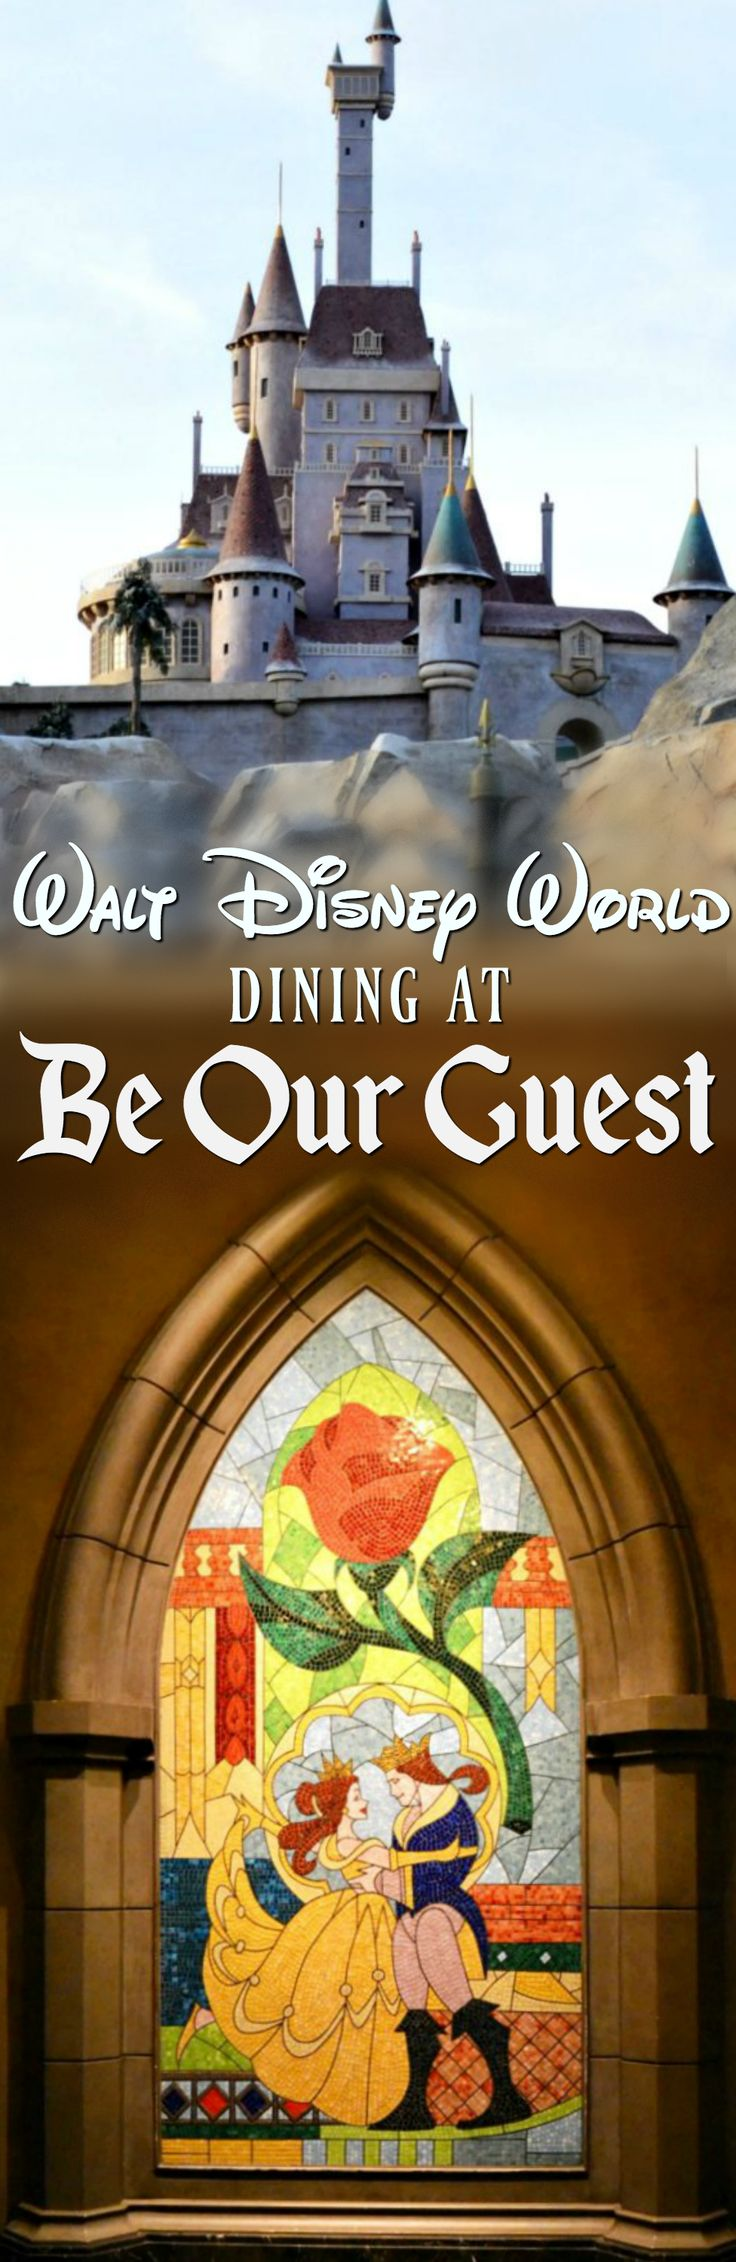 Dinner at Walt Disney World's Be Our Guest is a must for any fan of Beauty and the Beast!